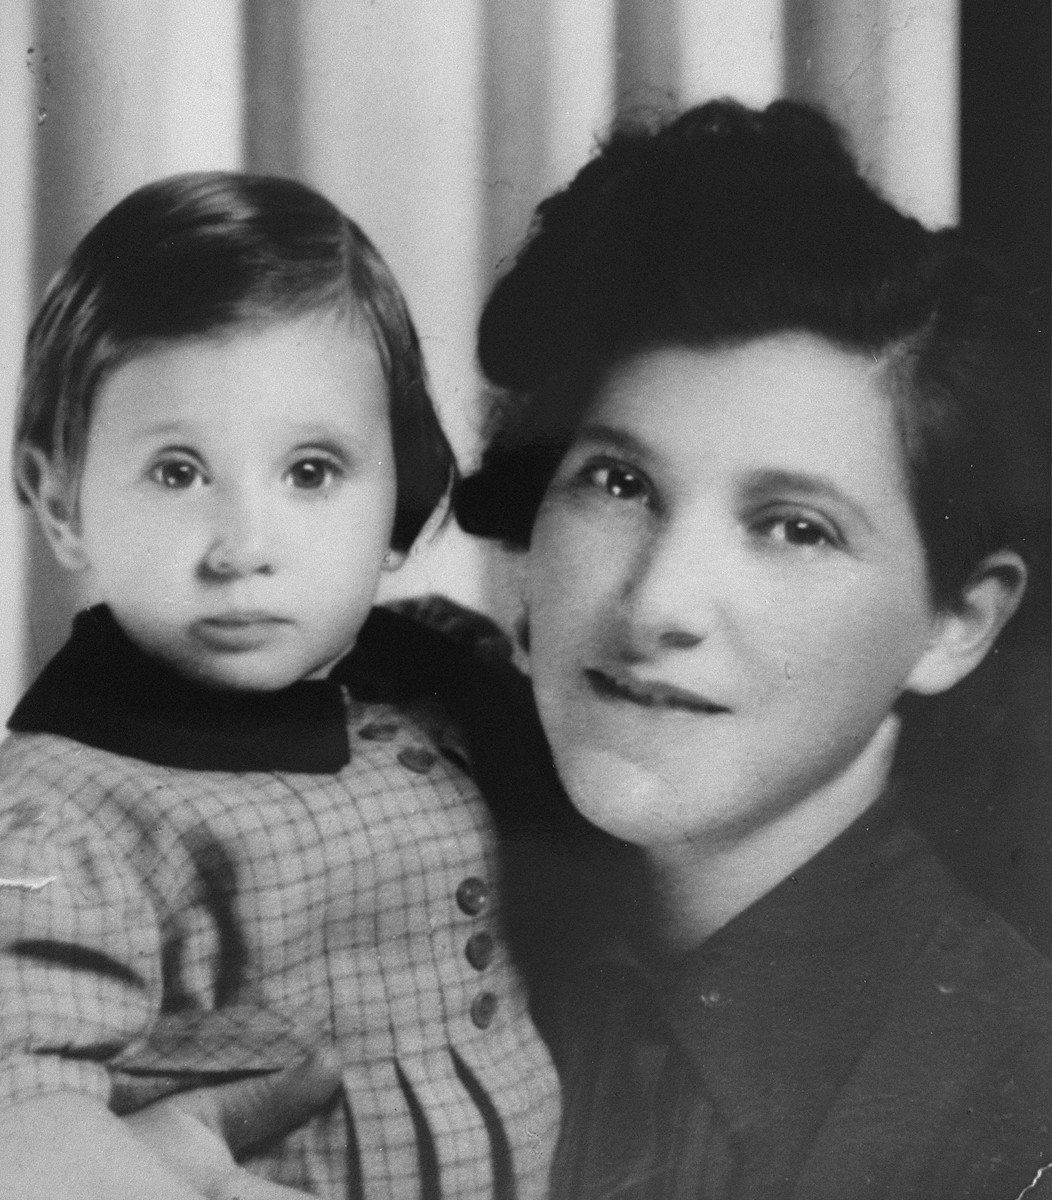 Portrait of a Jewish woman and her young daughter.  Pictured are Evi Weis with her mother, Magda Pollak Weisz, while en route out of Paris in 1941.